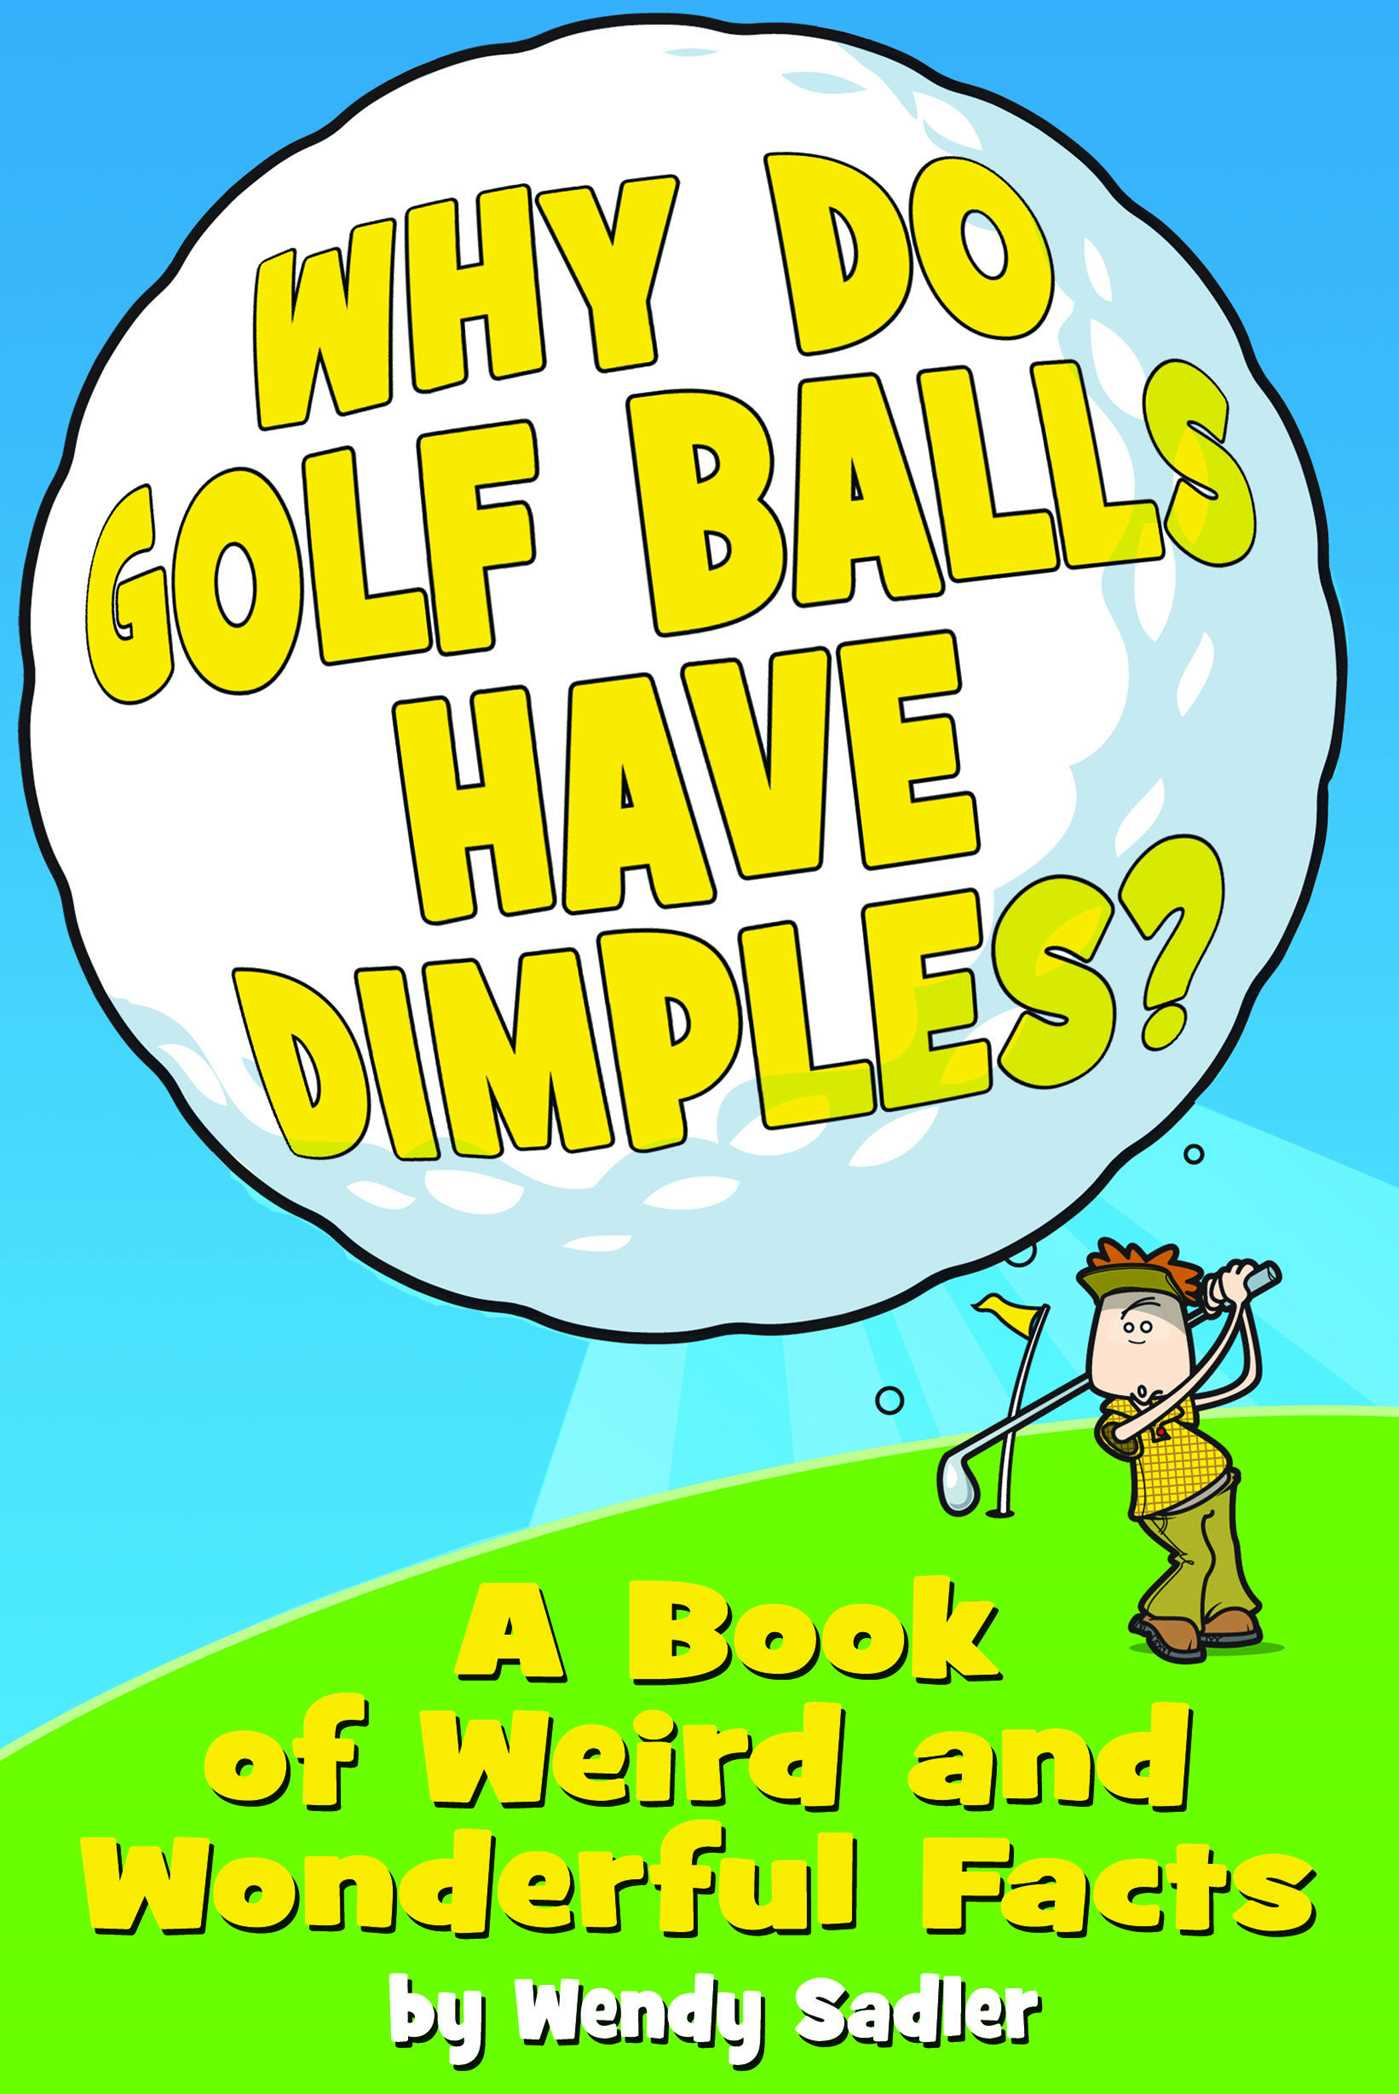 why do golf balls have dimples There is no precise number of dimples on a regulation golf ball, but most manufacturers design golf balls that have between 300 and 500 dimples the more dimples a golf ball has, the higher.